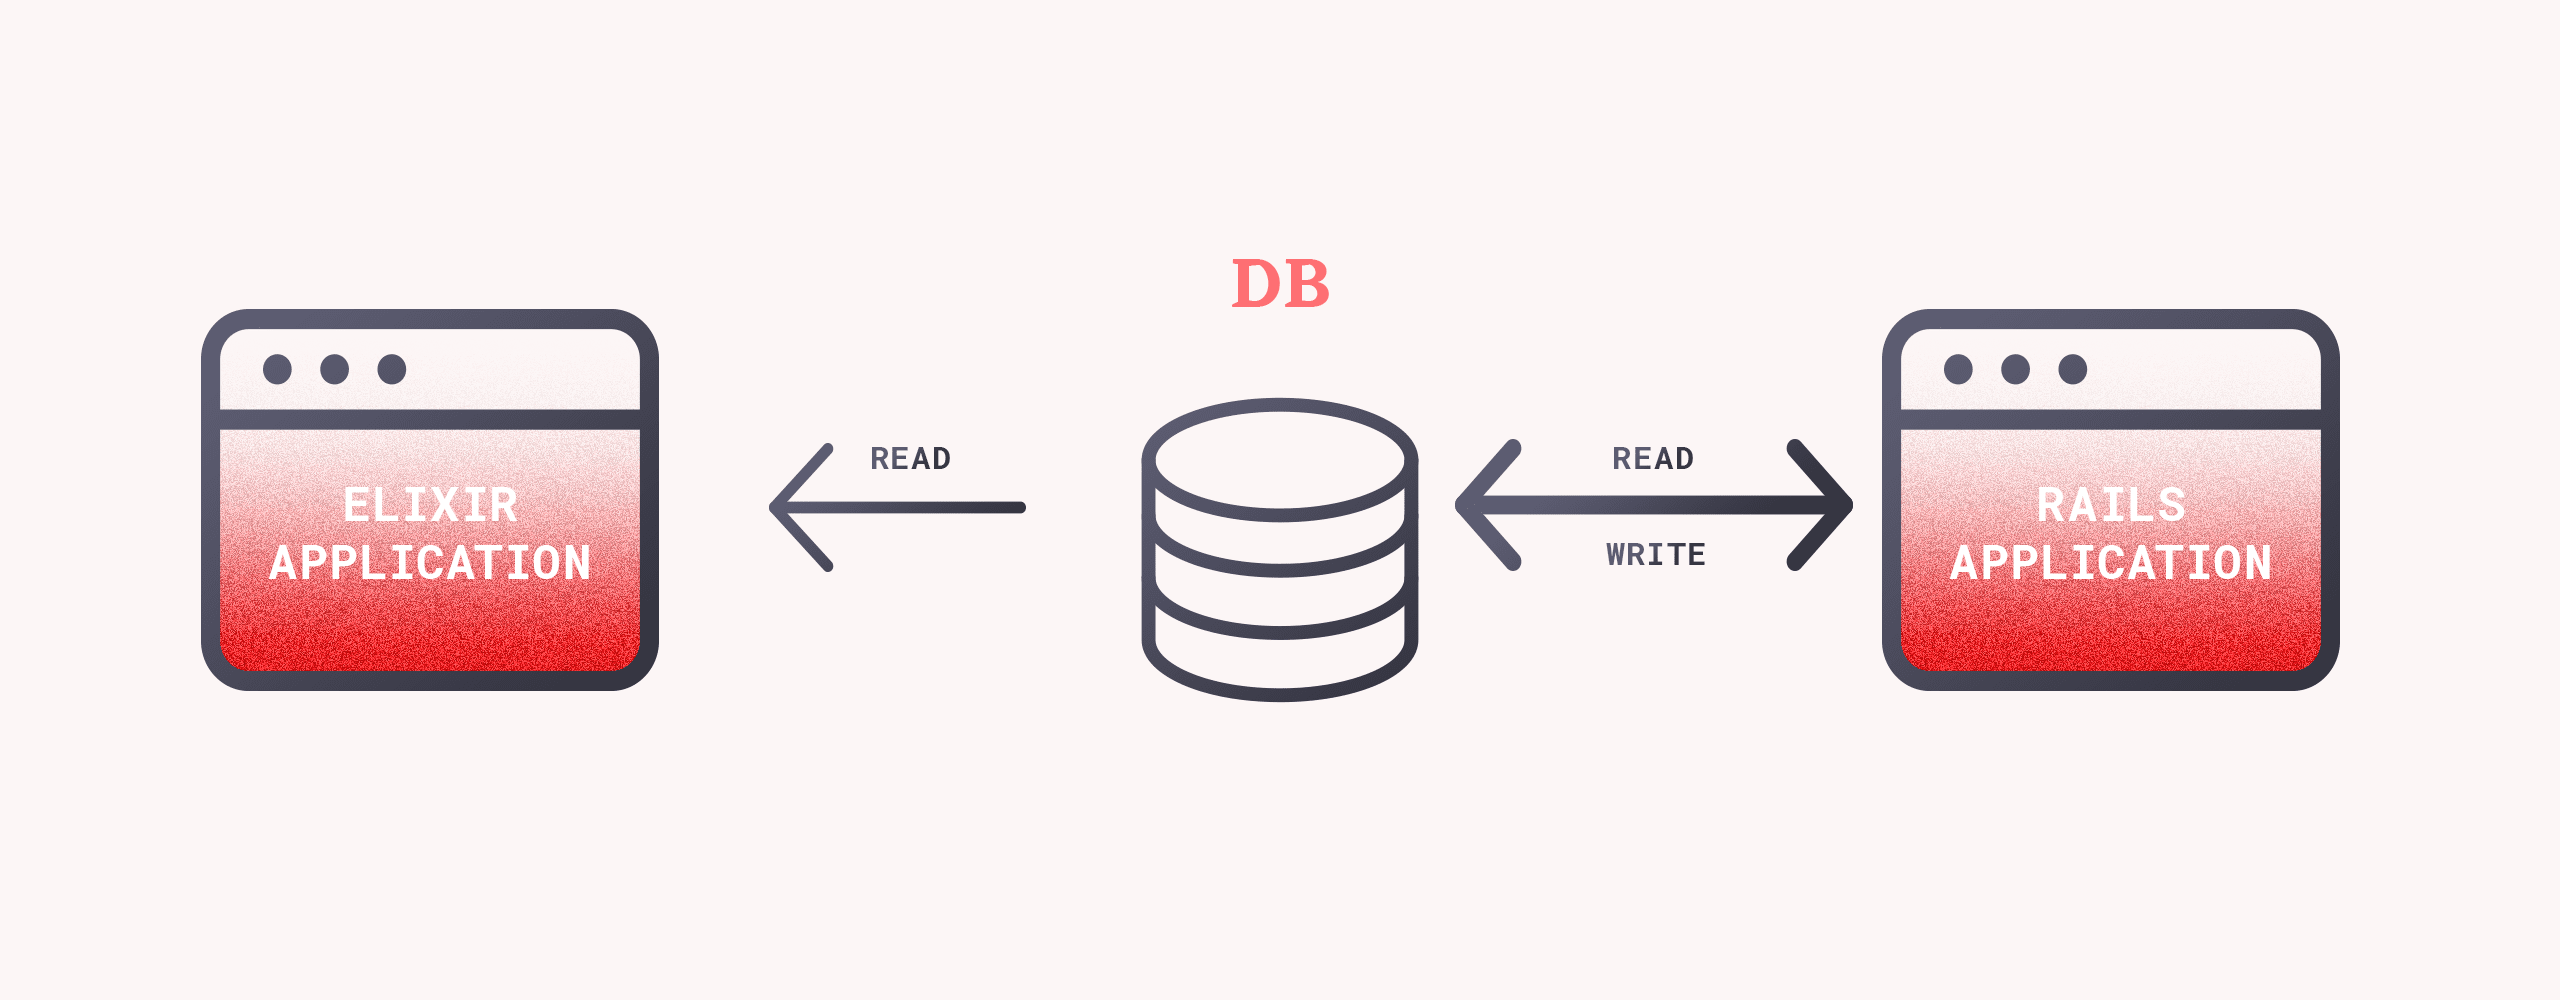 Database permissions for Elixir app and Rails app